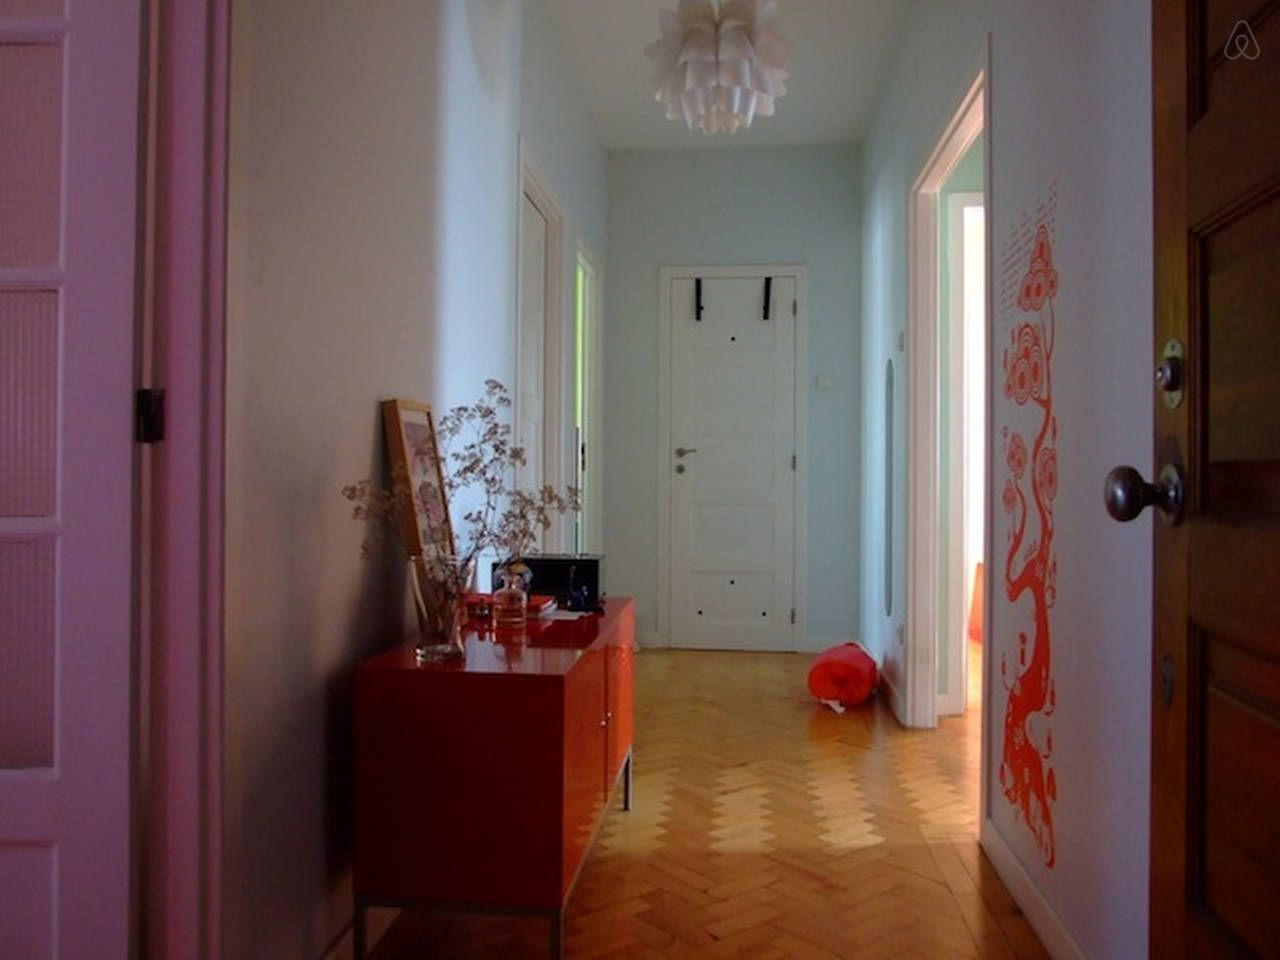 Sunny bedroom apart in Oporto 1   Rent room for 6 months --  good price/location - Get $25 credit with Airbnb if you sign up with this link http://www.airbnb.com/c/groberts22